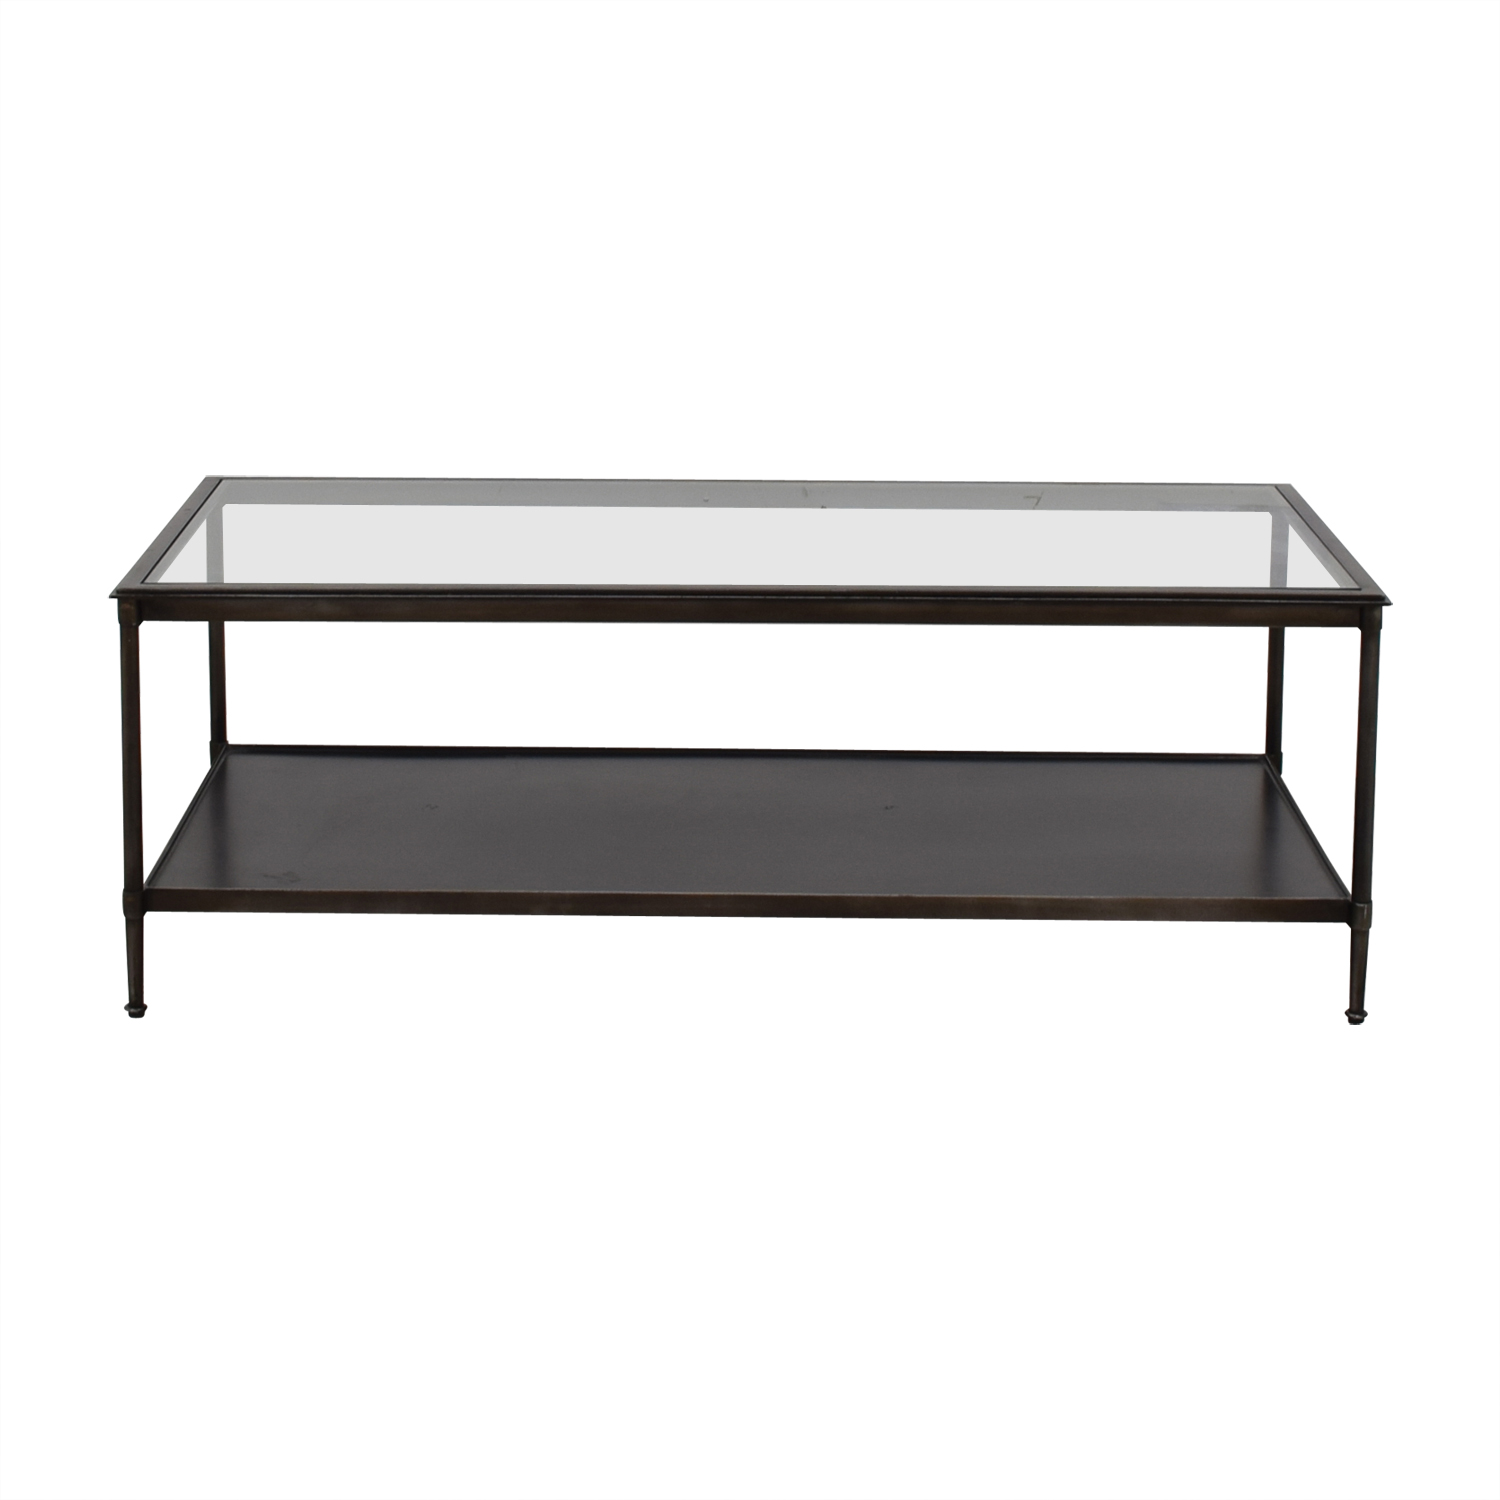 Crate & Barrel Crate & Barrel Glass Top Coffee Table